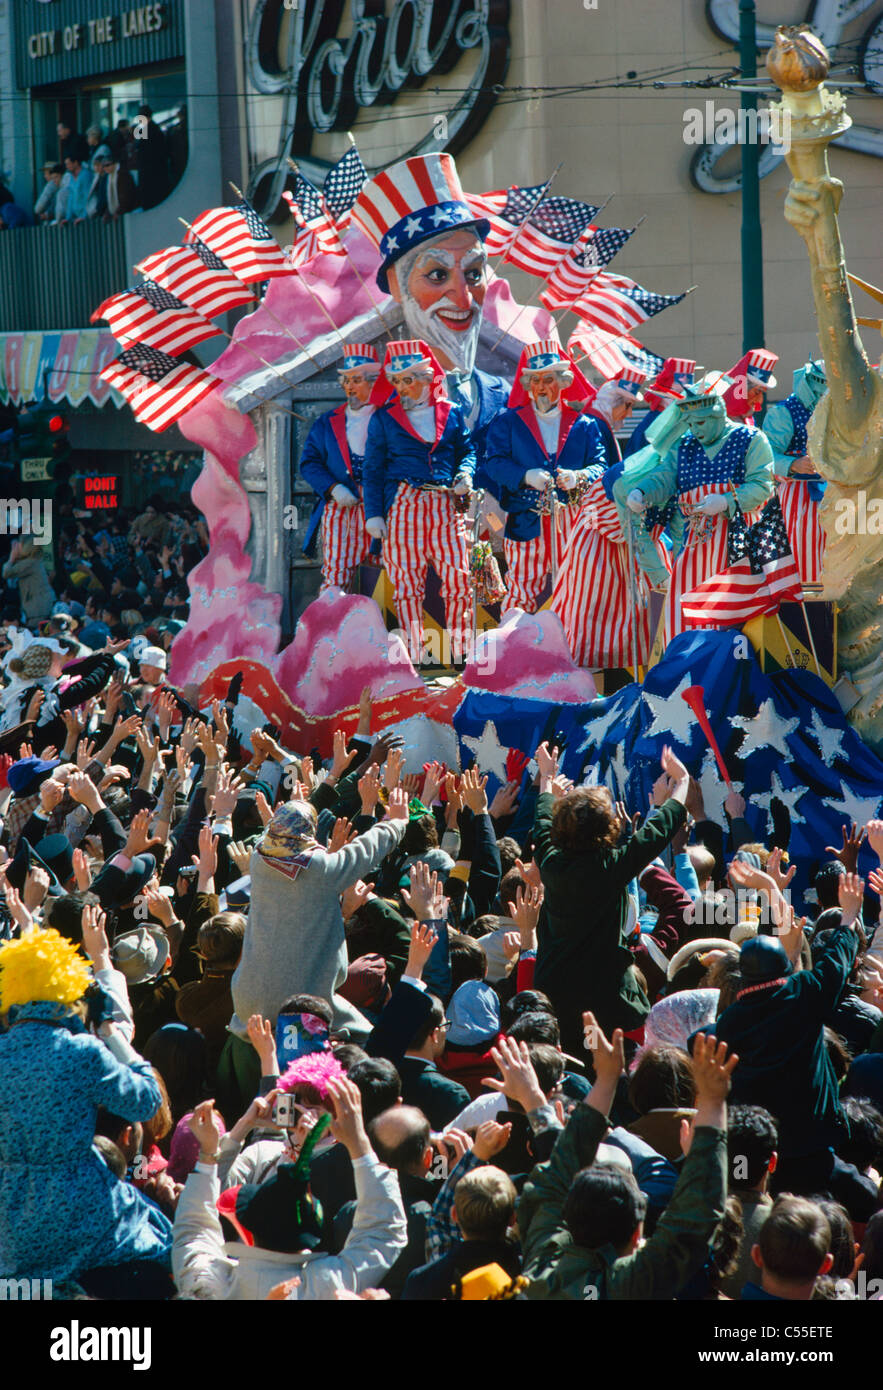 USA, Louisiana, New Orleans, Karneval parade Stockbild